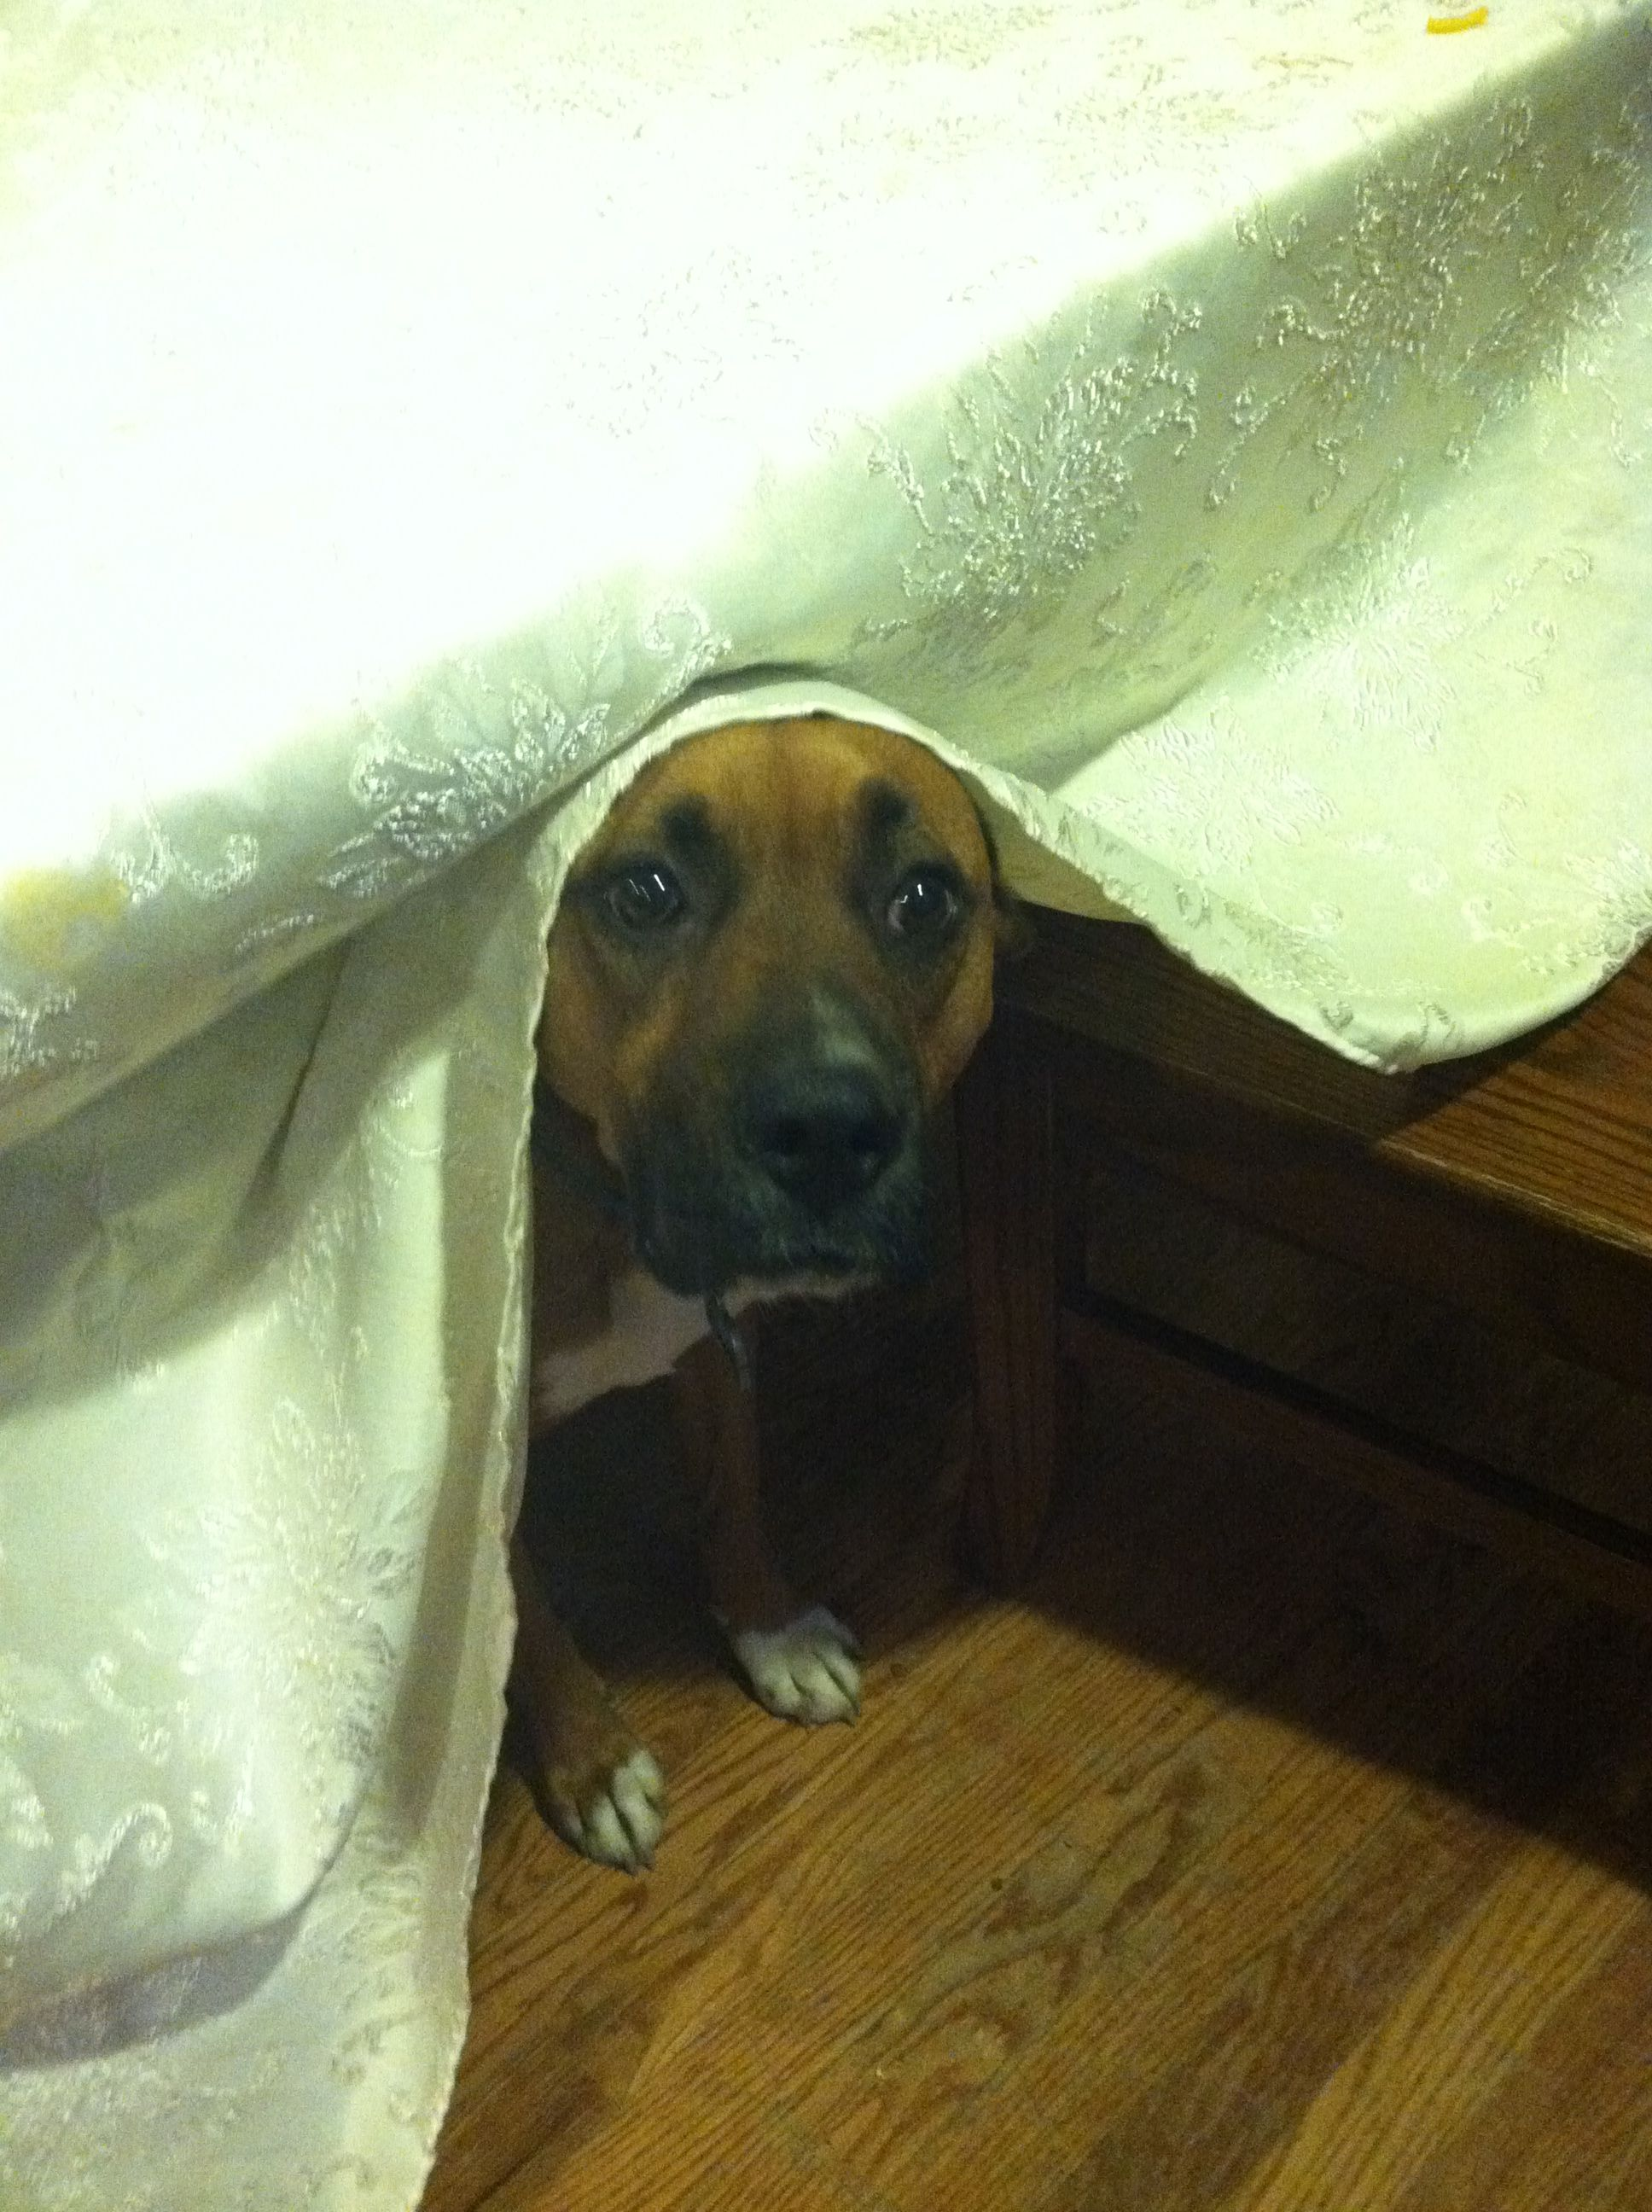 Knowing he ate a loaf of bread and then hiding. If hide too!